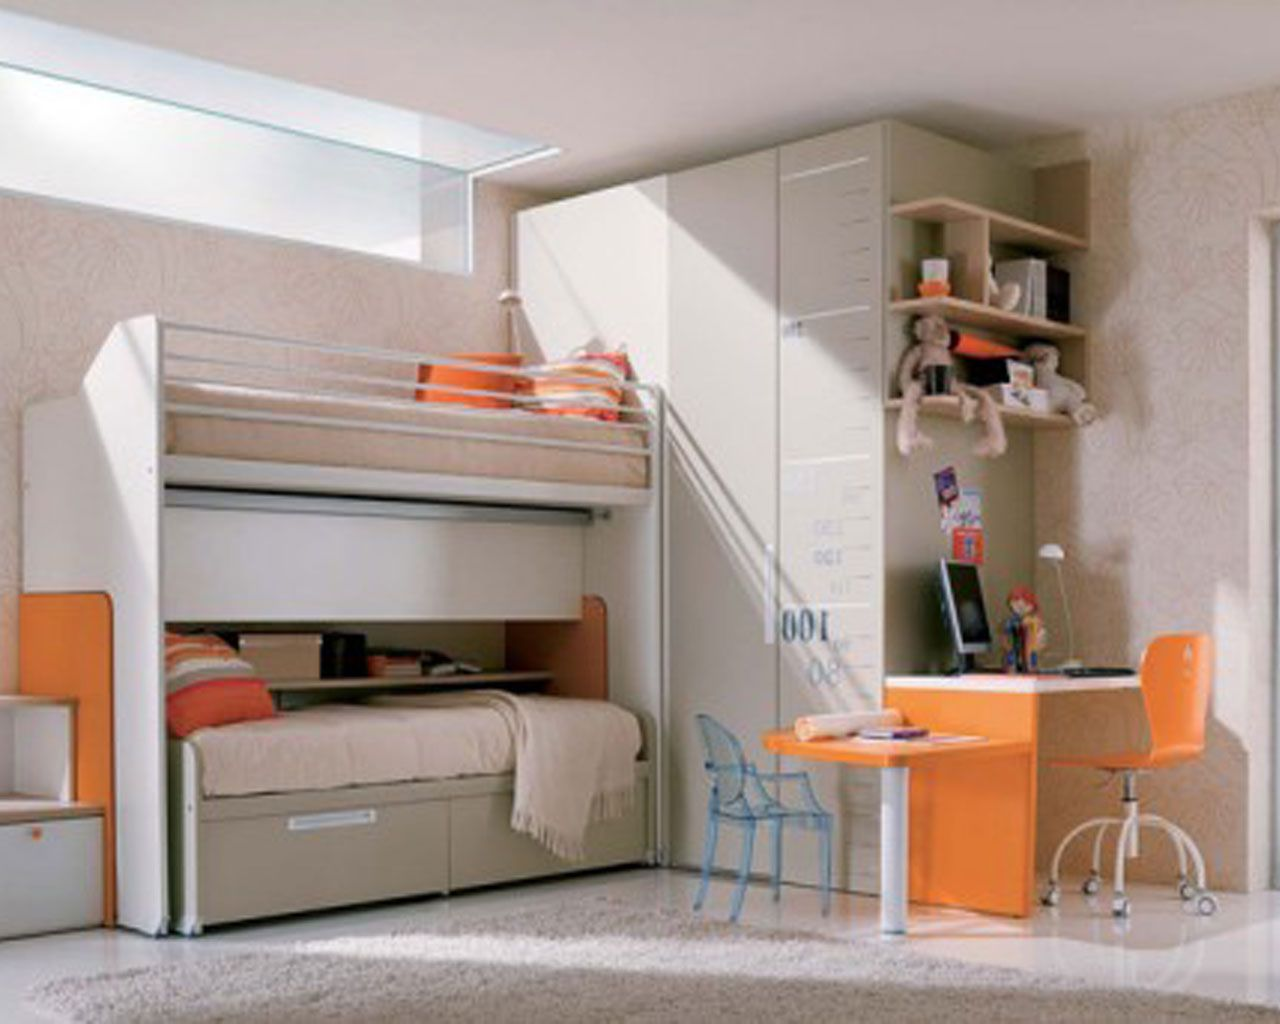 Teenage girl loft bed ideas  Pin by Mariana Wusiang on  Home Design Ideas  Pinterest